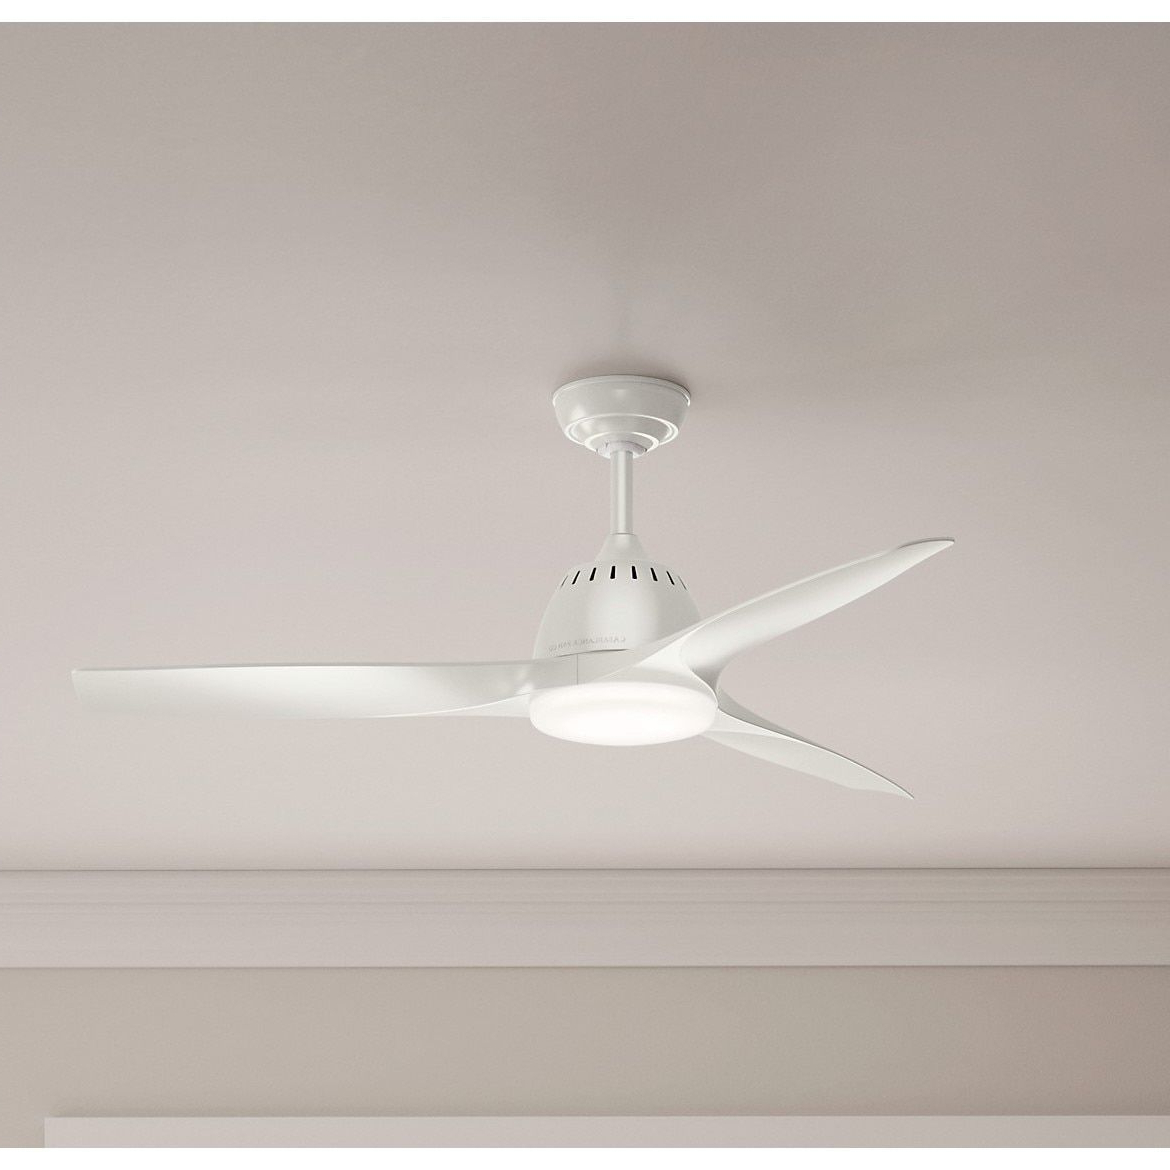 Casablanca Fan 3 Blade Wisp Fresh White Fan (52 Wisp Fresh Throughout 2019 Wisp 3 Blade Led Ceiling Fans (View 2 of 20)